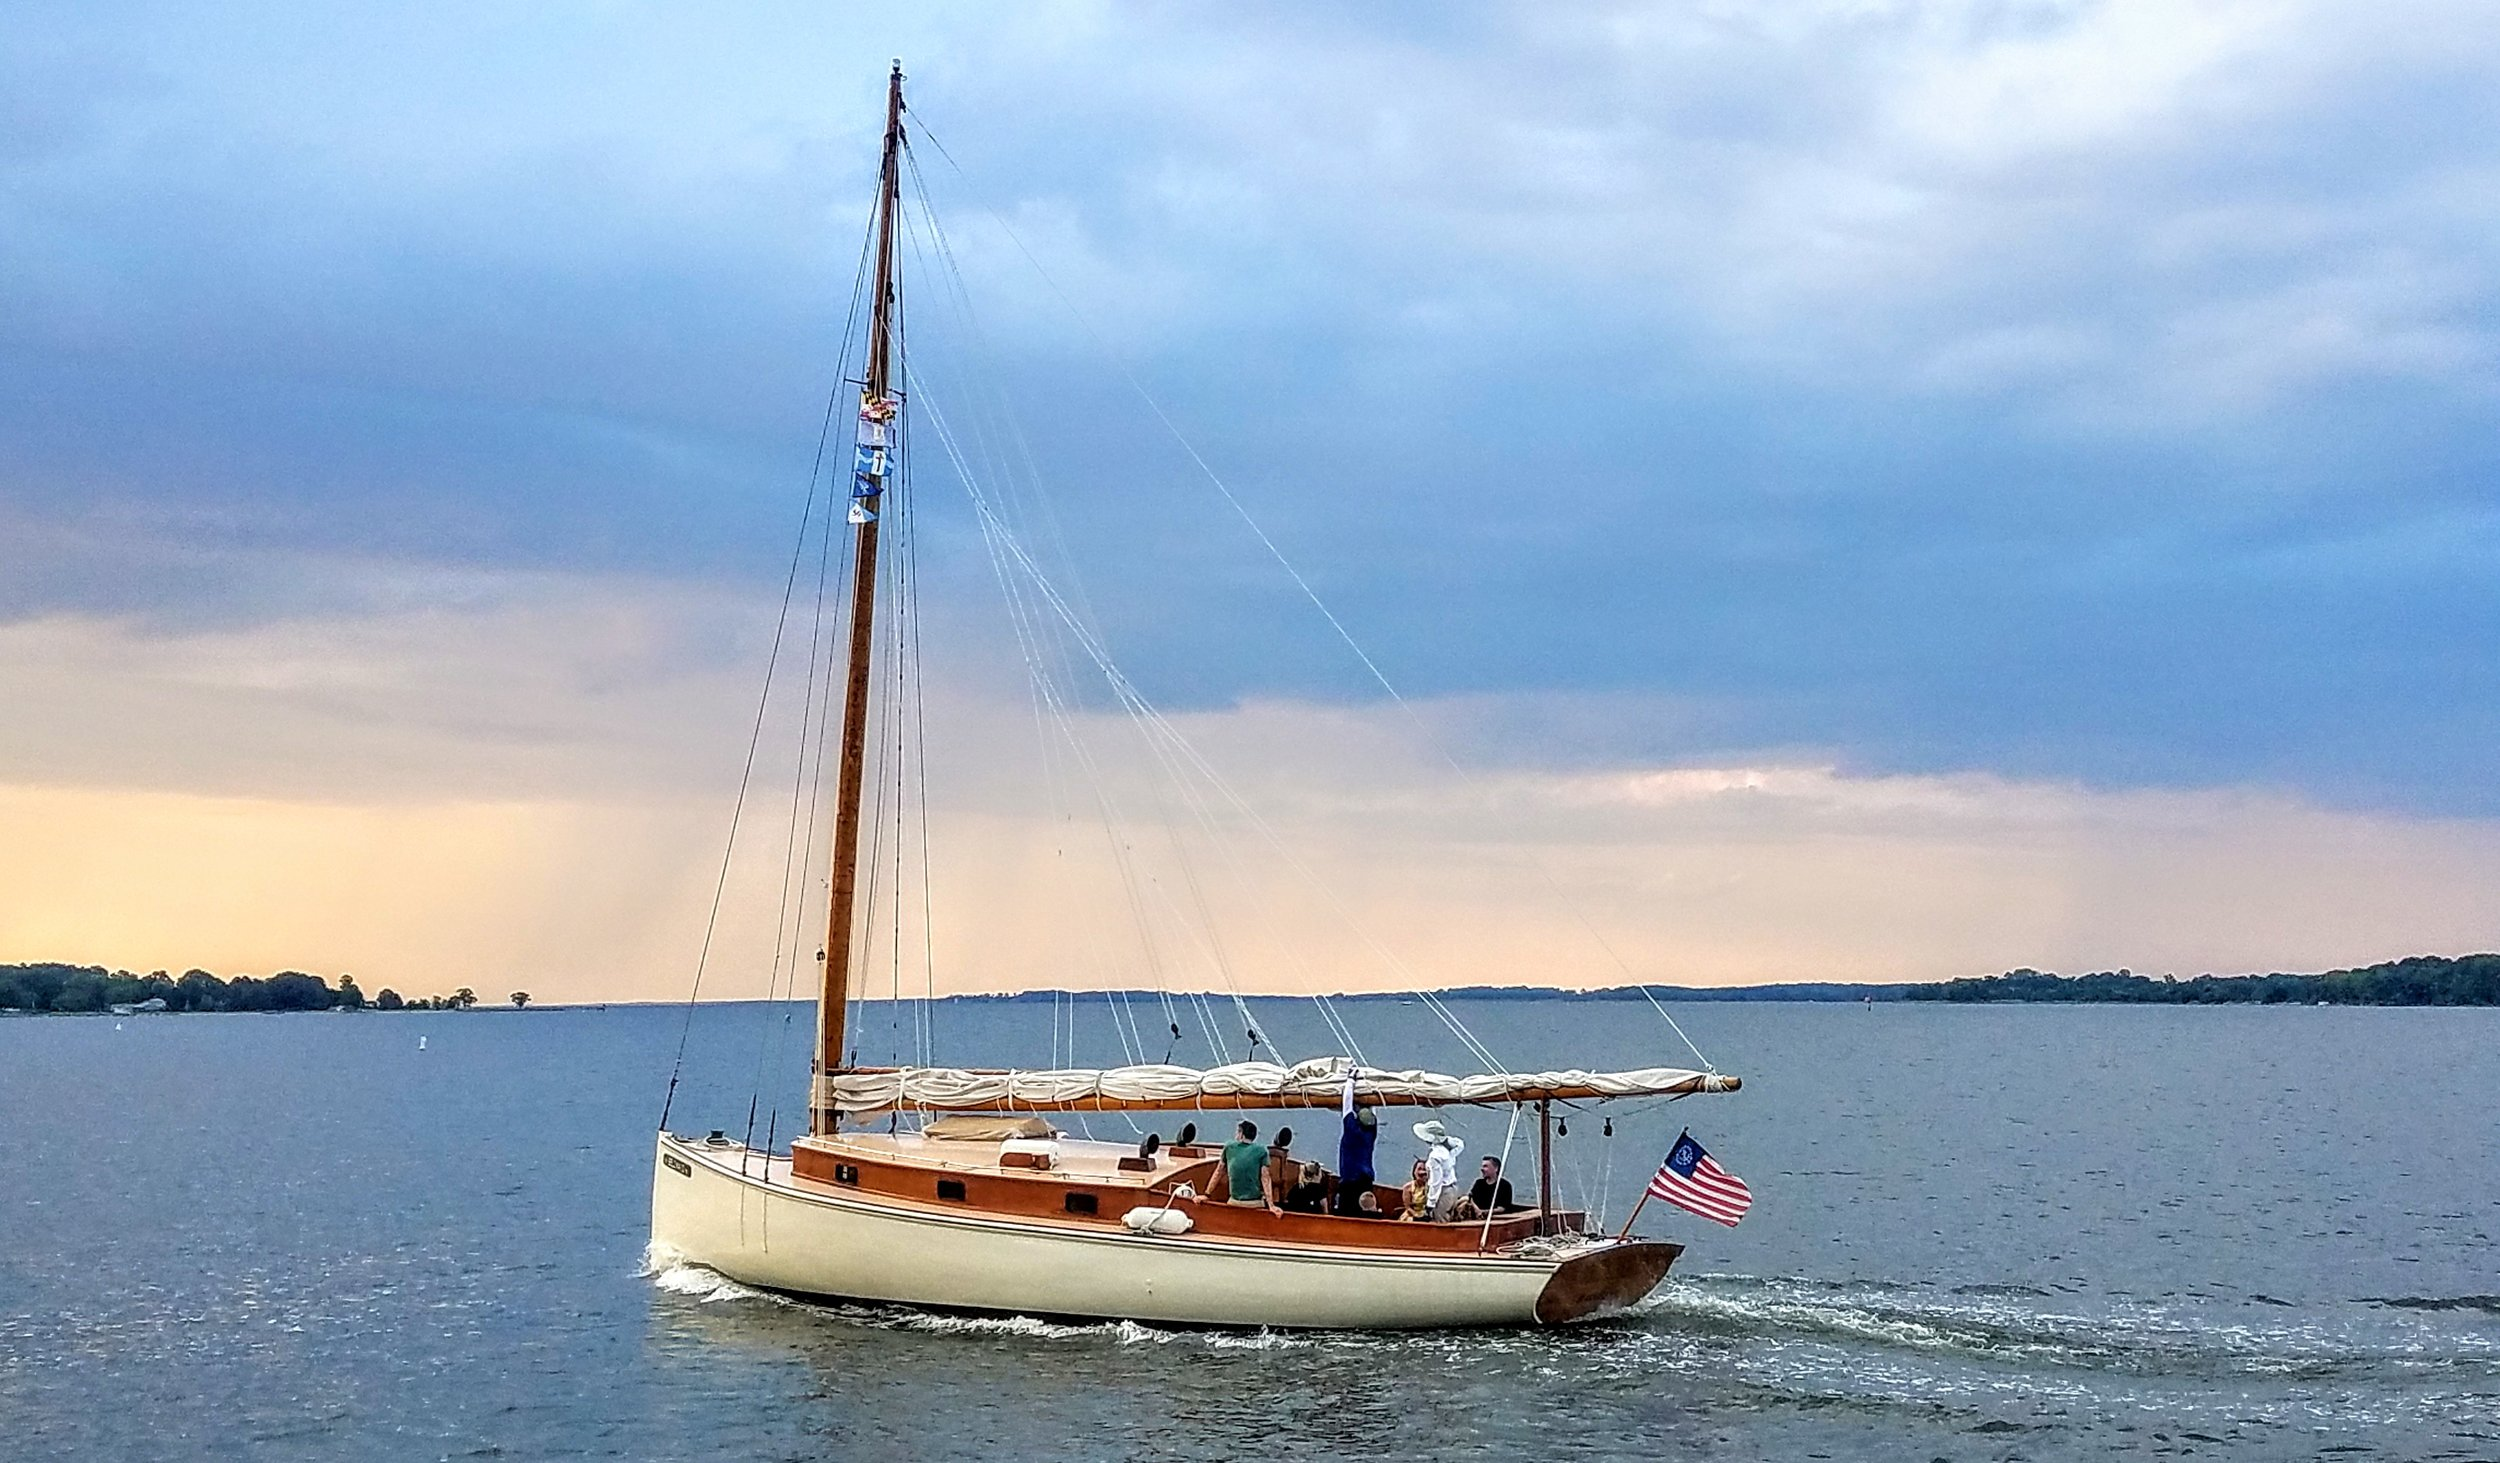 The 'Selena'. You can hire her crew to take you on a sunset cruise